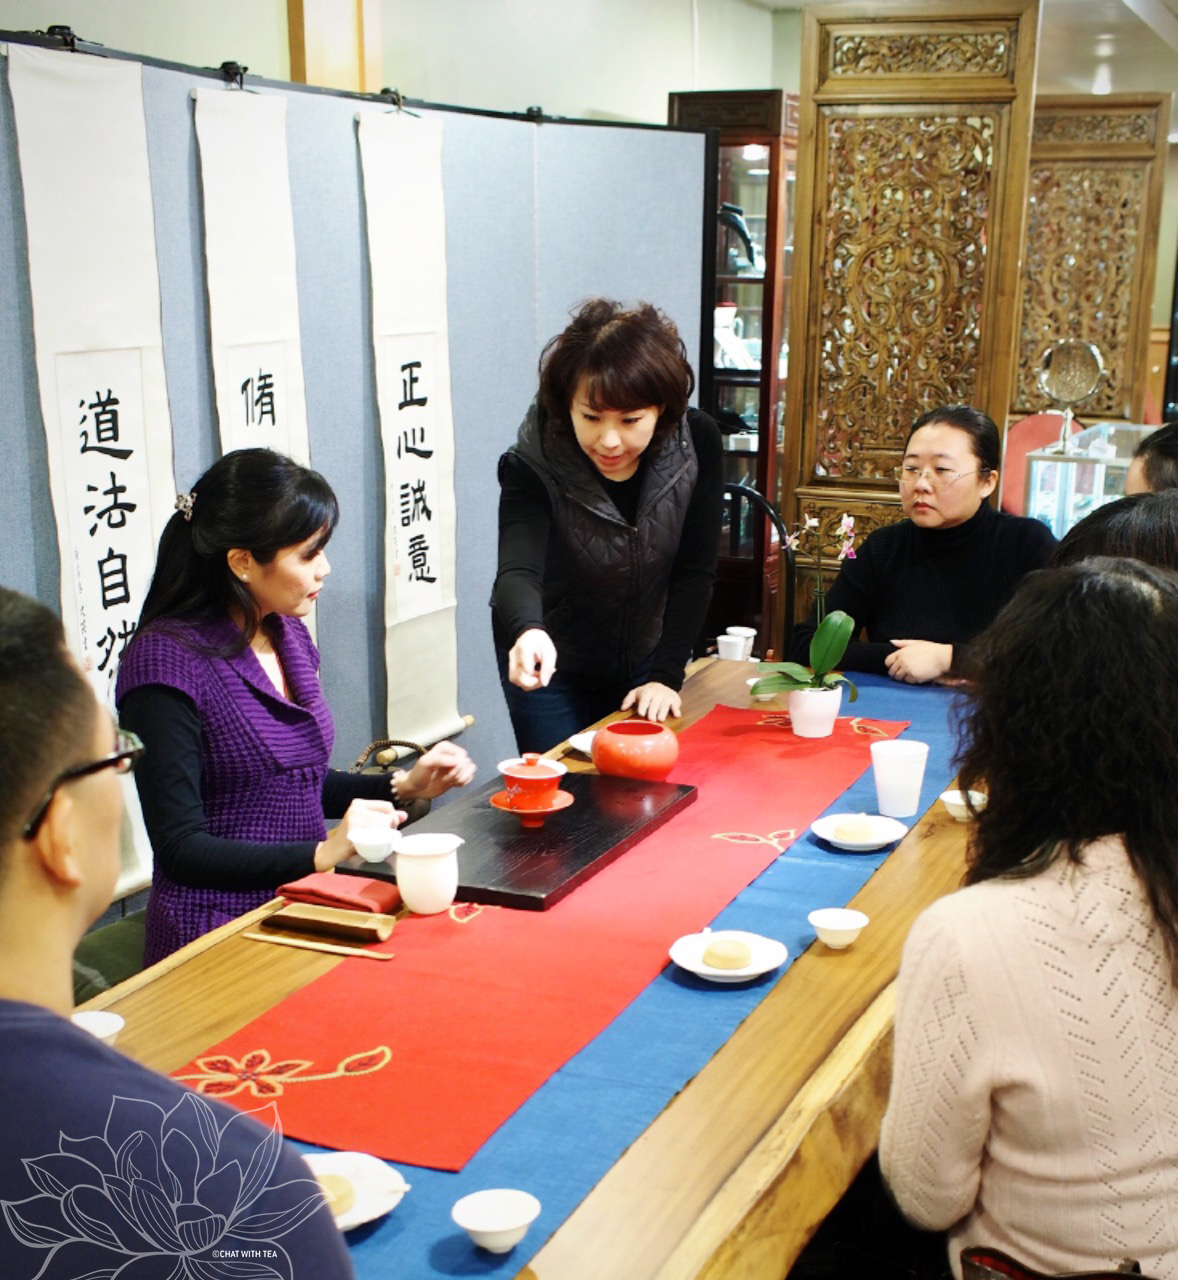 芳茗軒茶道 Tea Ceremony Classes by Tea Master Mancsi